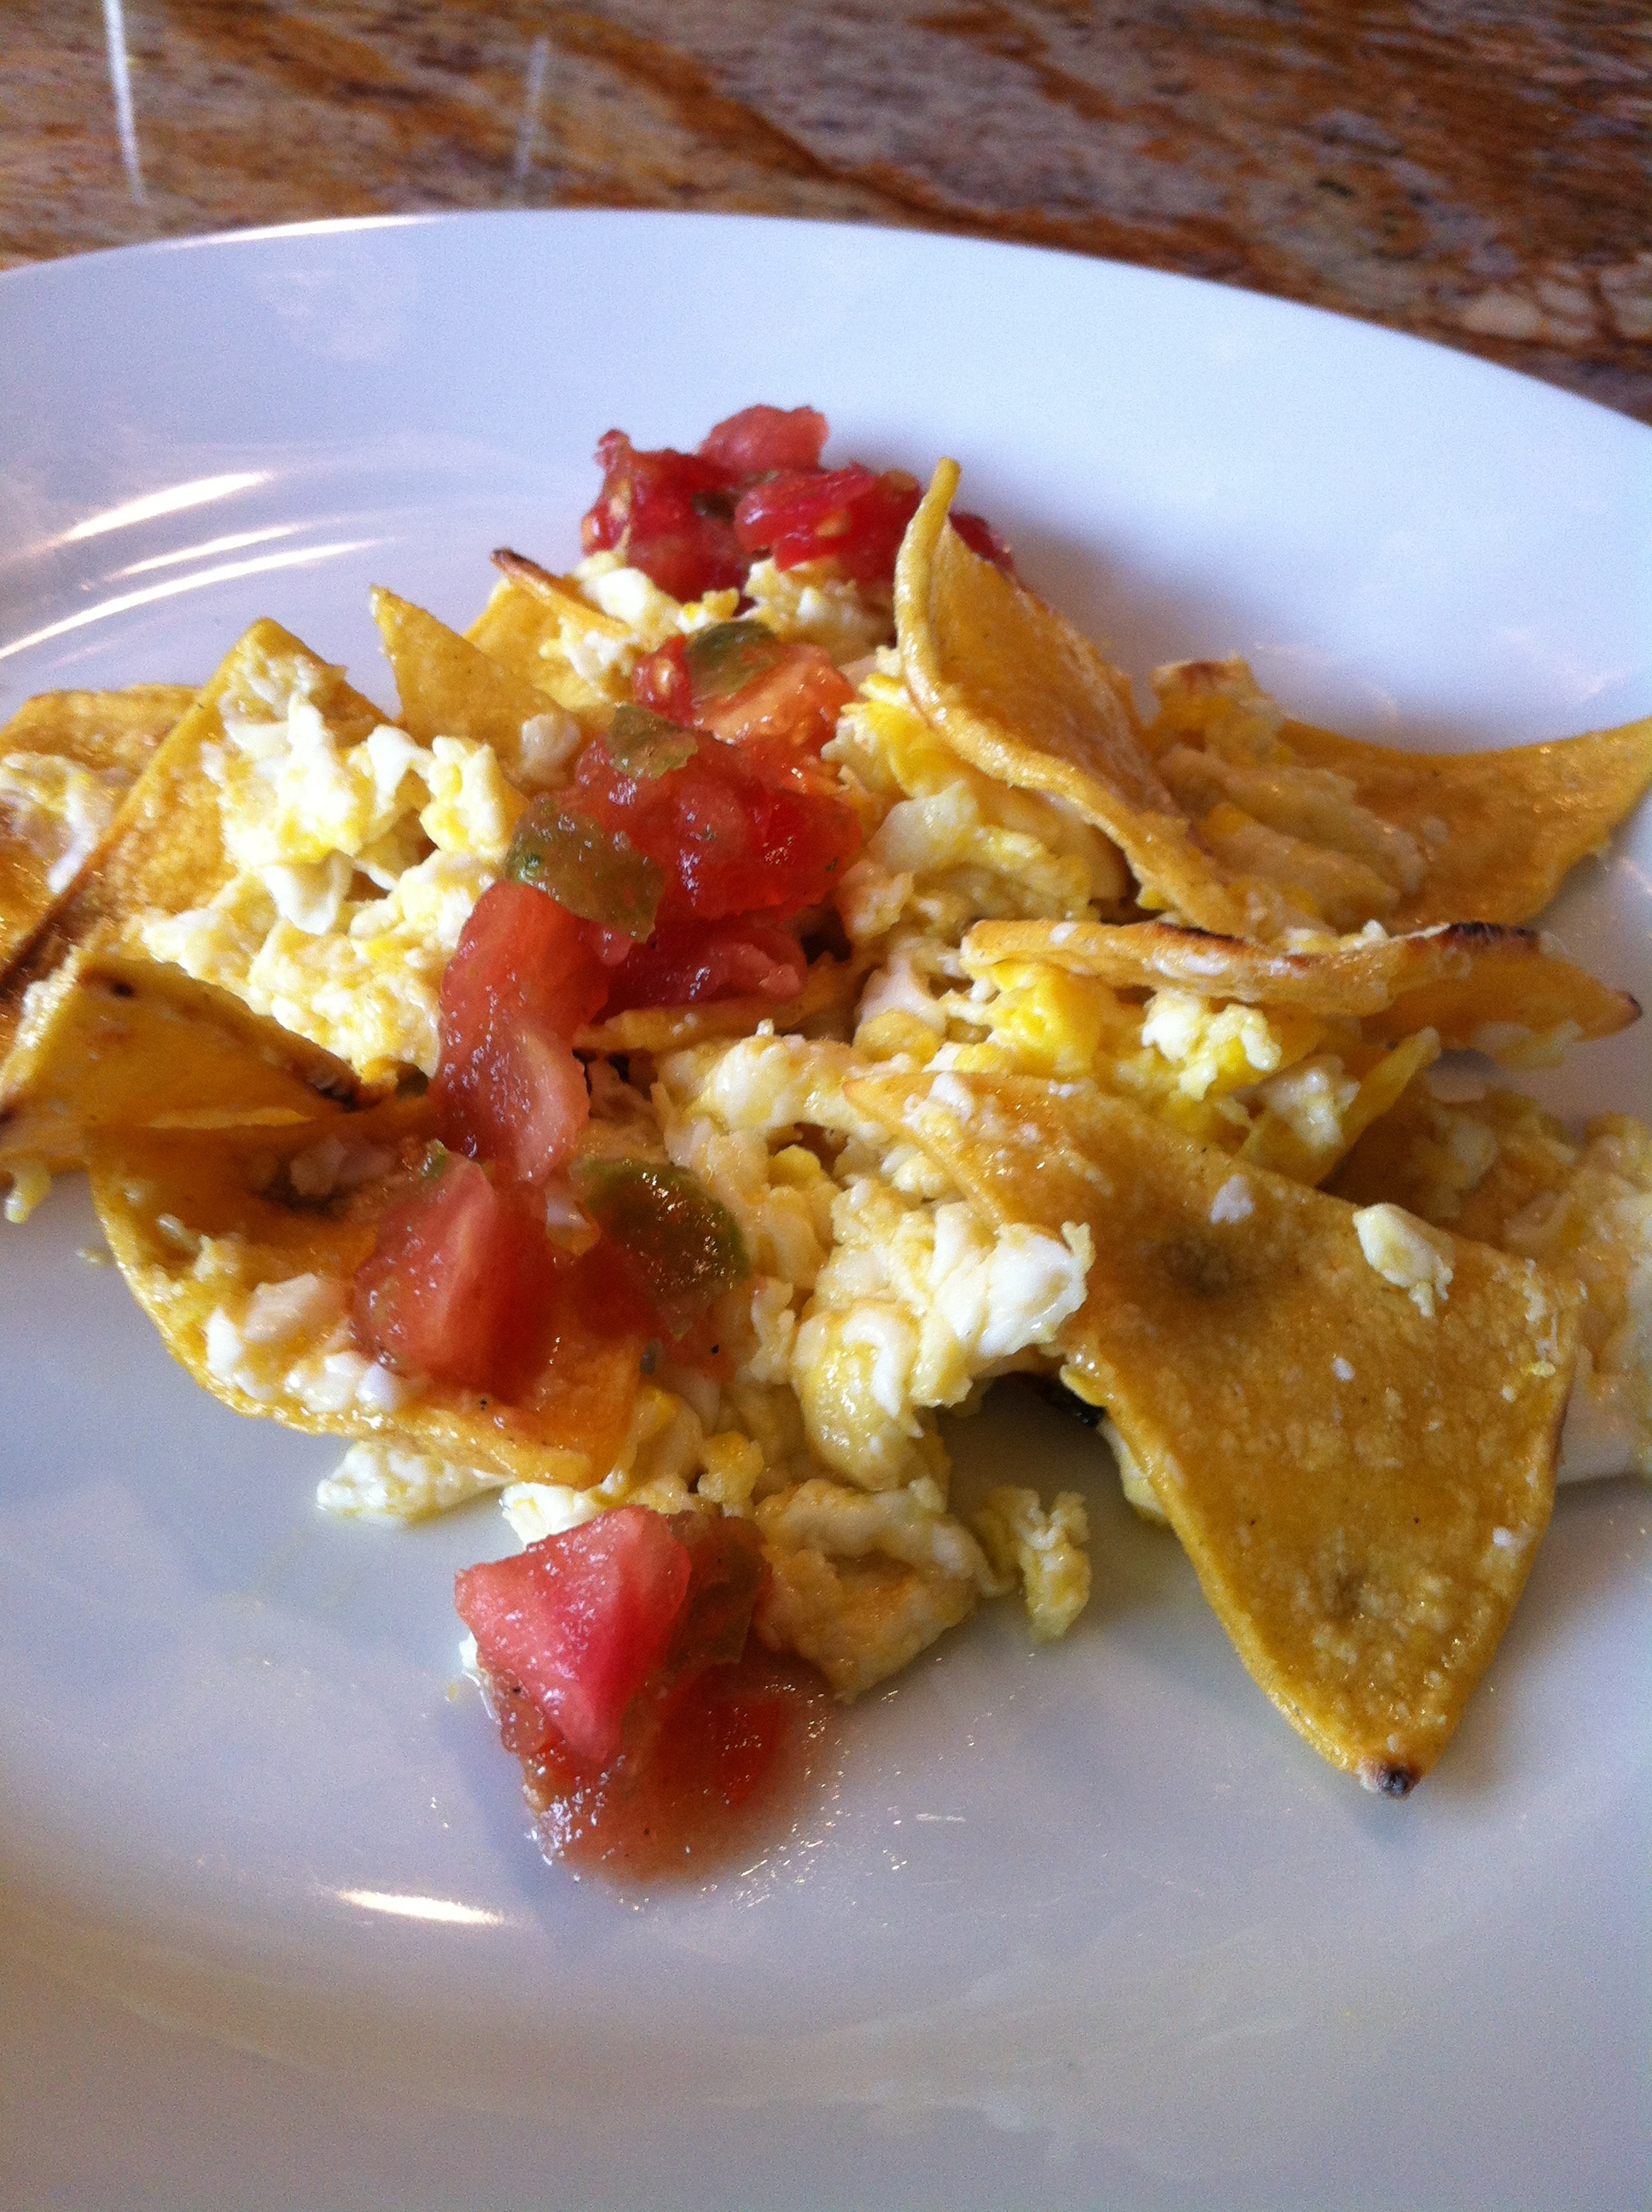 Texas Mexican Breakfast:  Migas con Chile